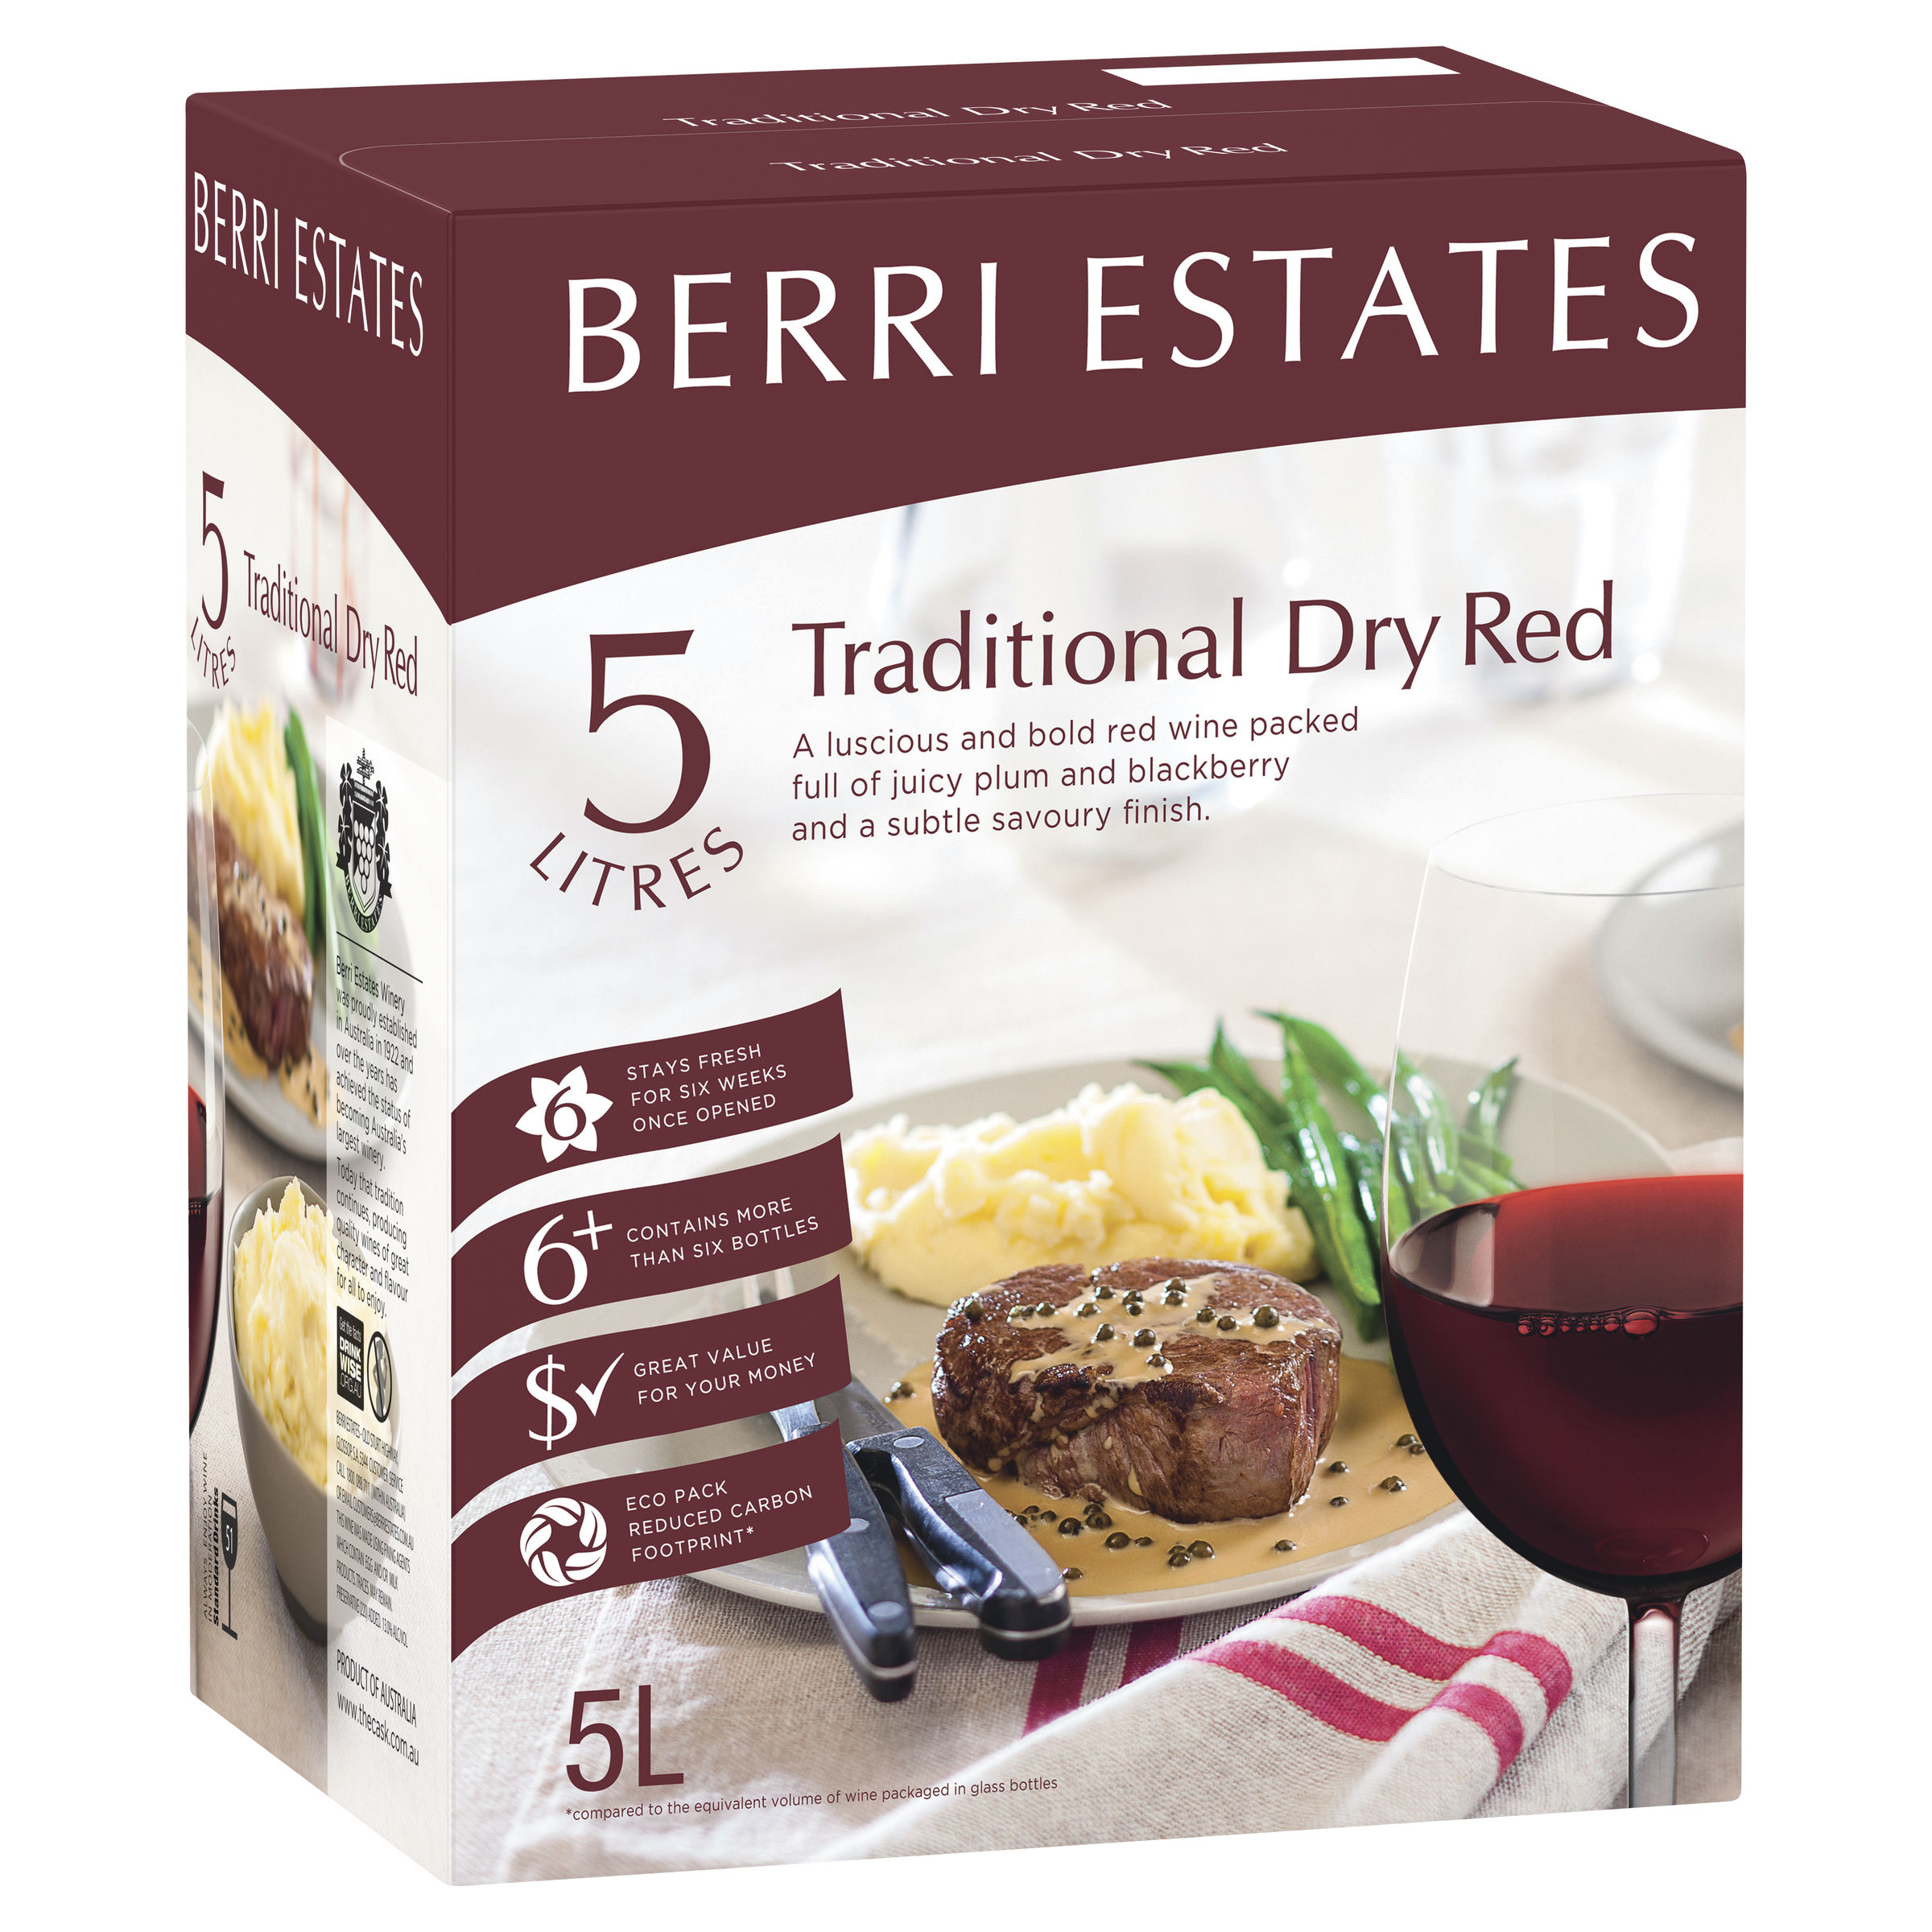 BERRI ESTATES TRADITIONAL DRY RED CLARET